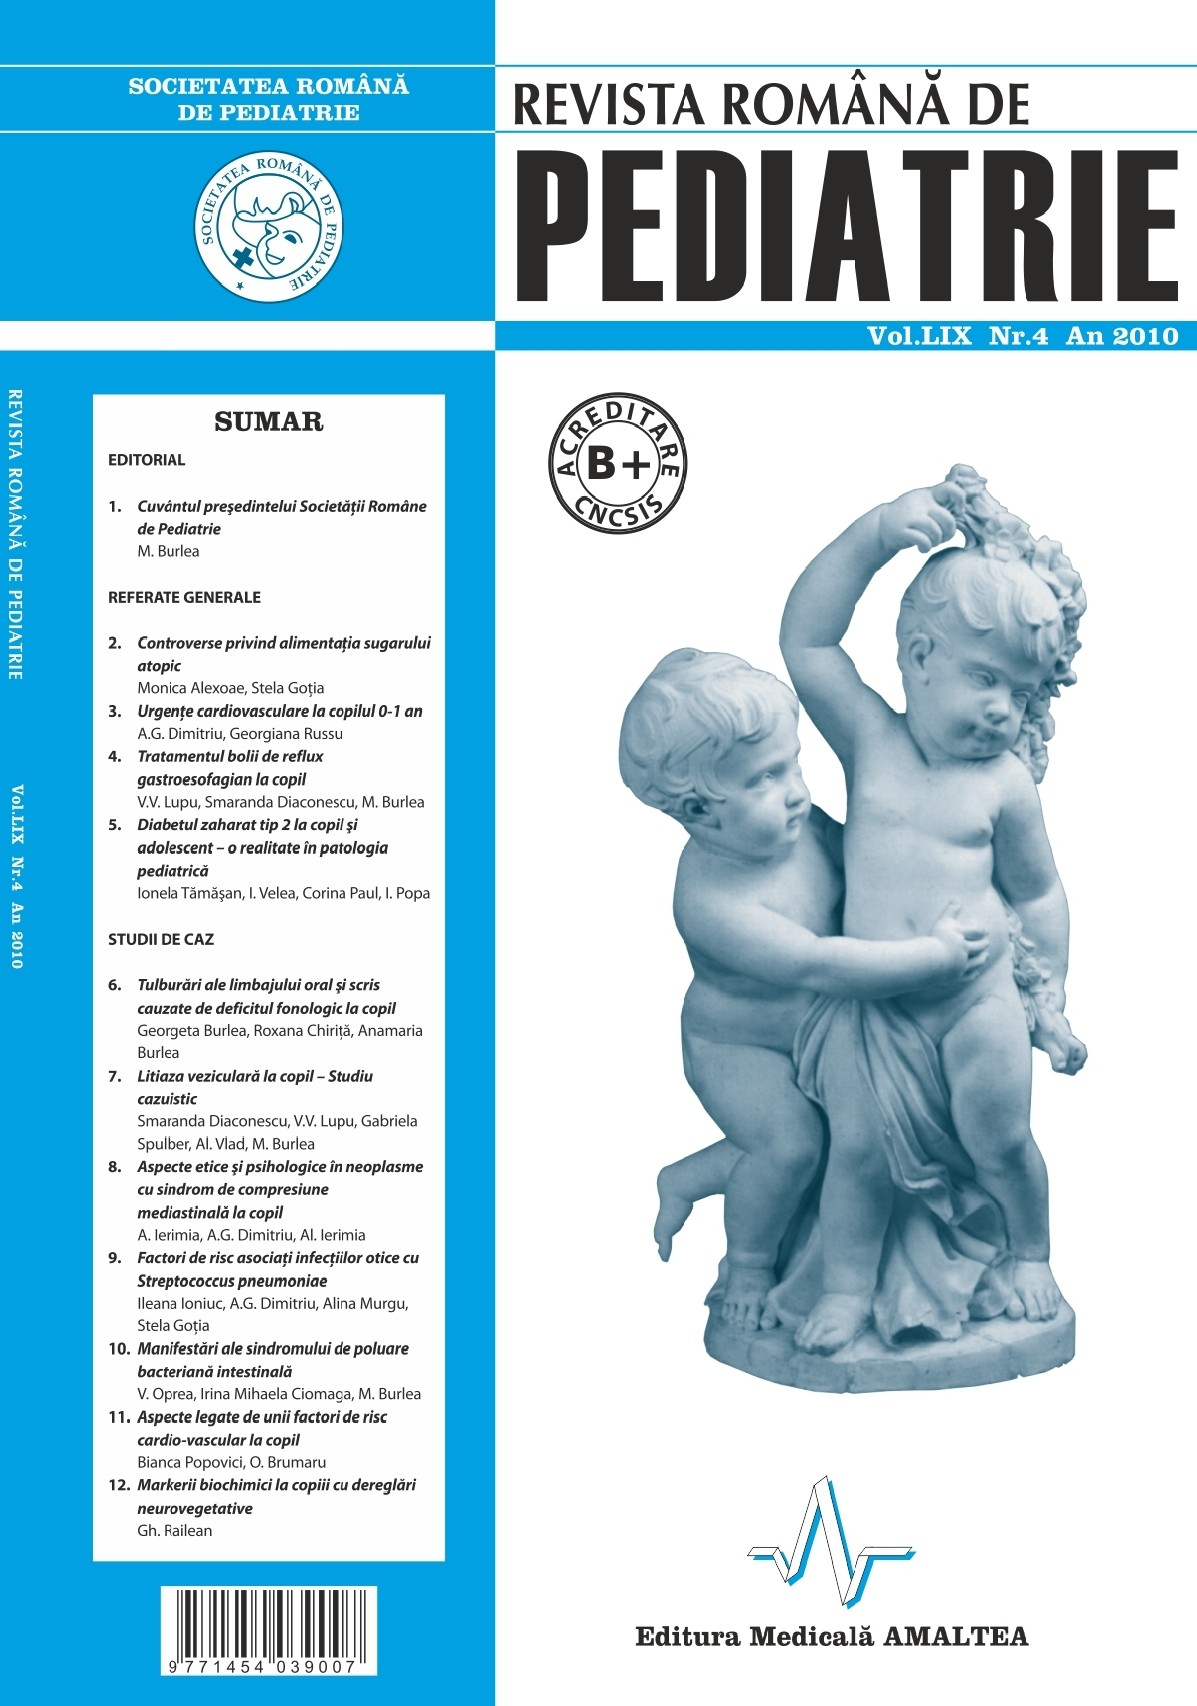 Revista Romana de PEDIATRIE | Volumul LIX, No. 4, Year 2010